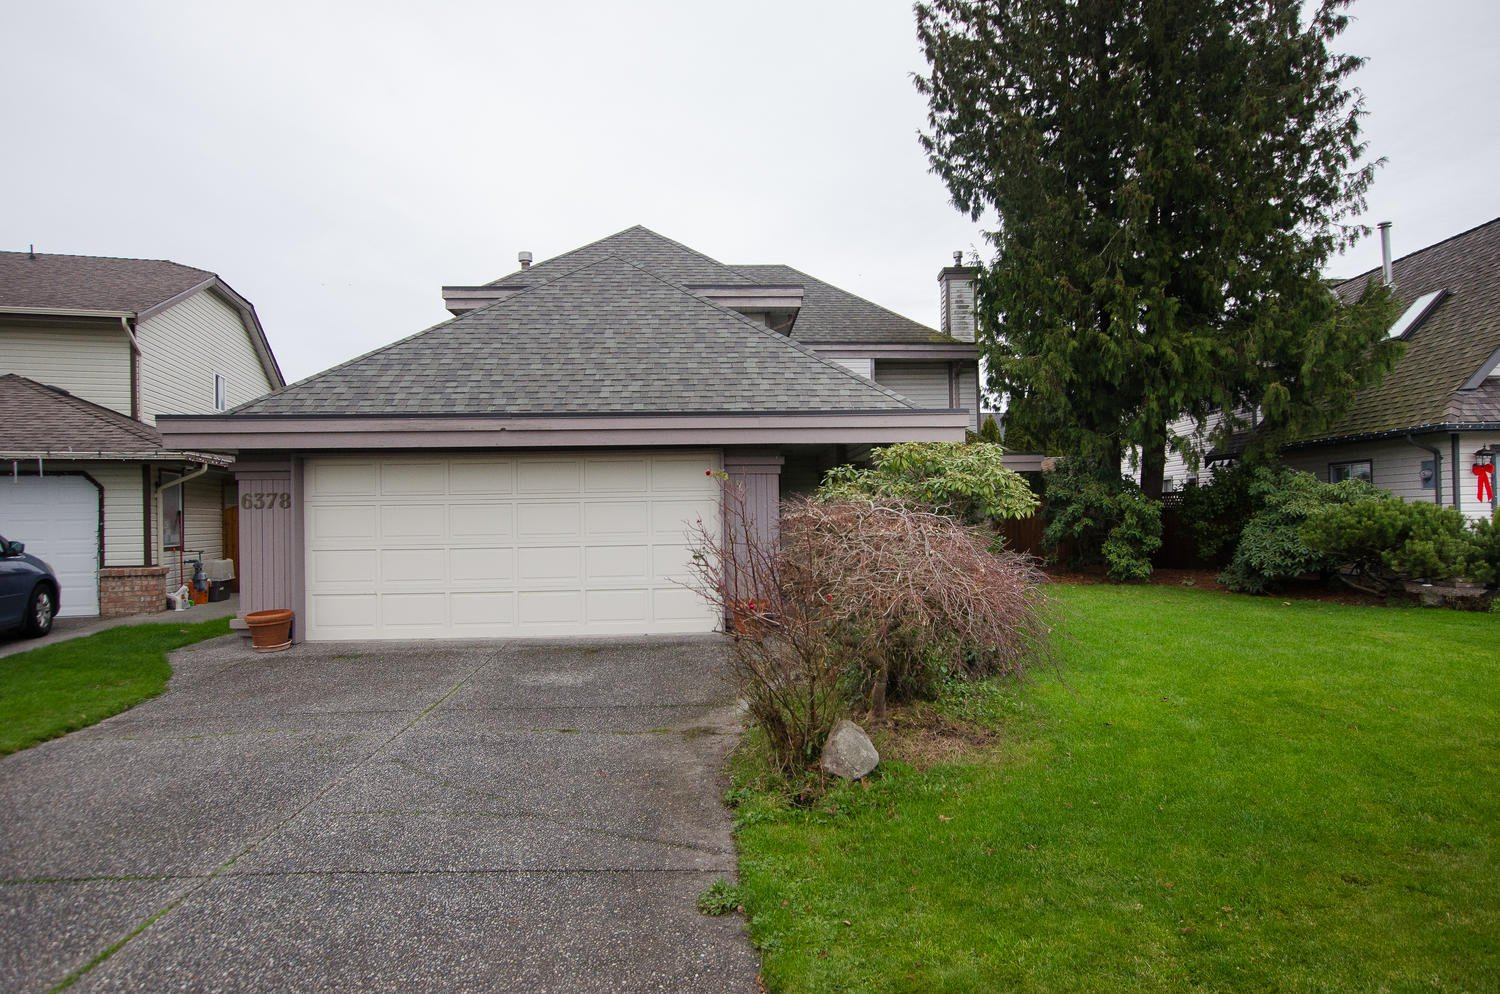 Main Photo: 6378 45B AVENUE in Delta: Holly House for sale (Ladner)